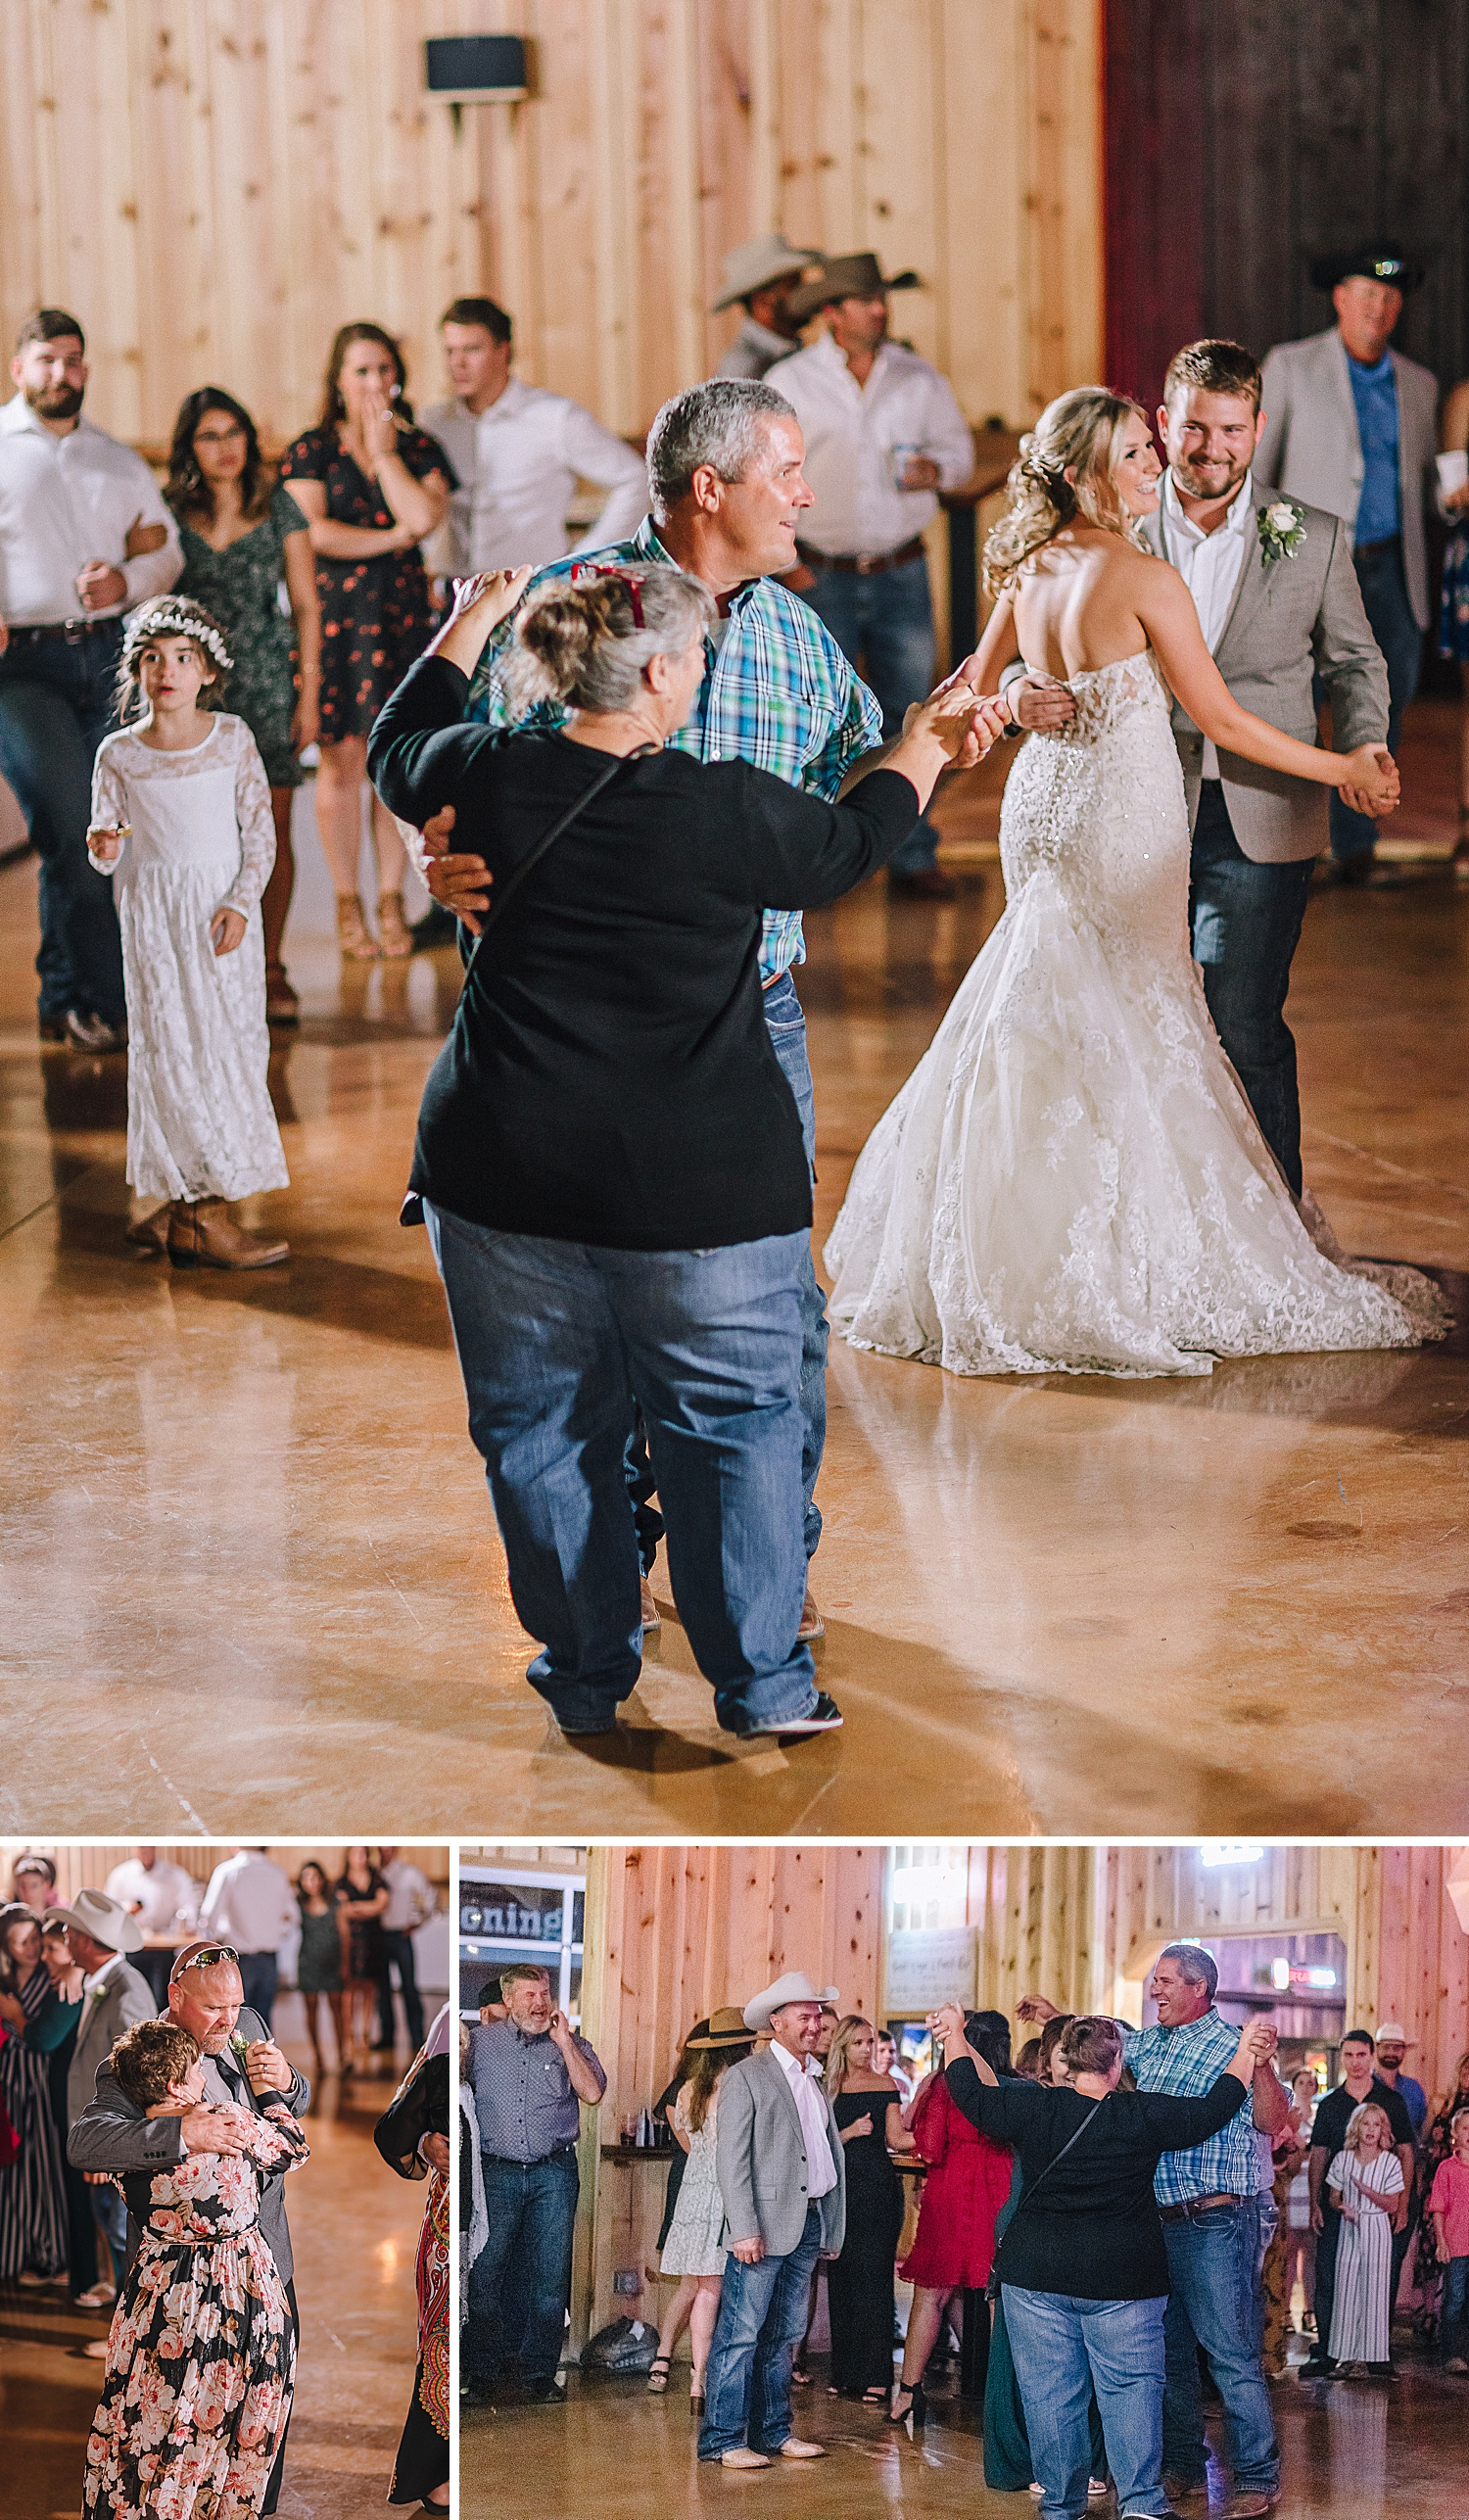 Rackler-Ranch-LaVernia-Texas-Wedding-Carly-Barton-Photography_0152.jpg